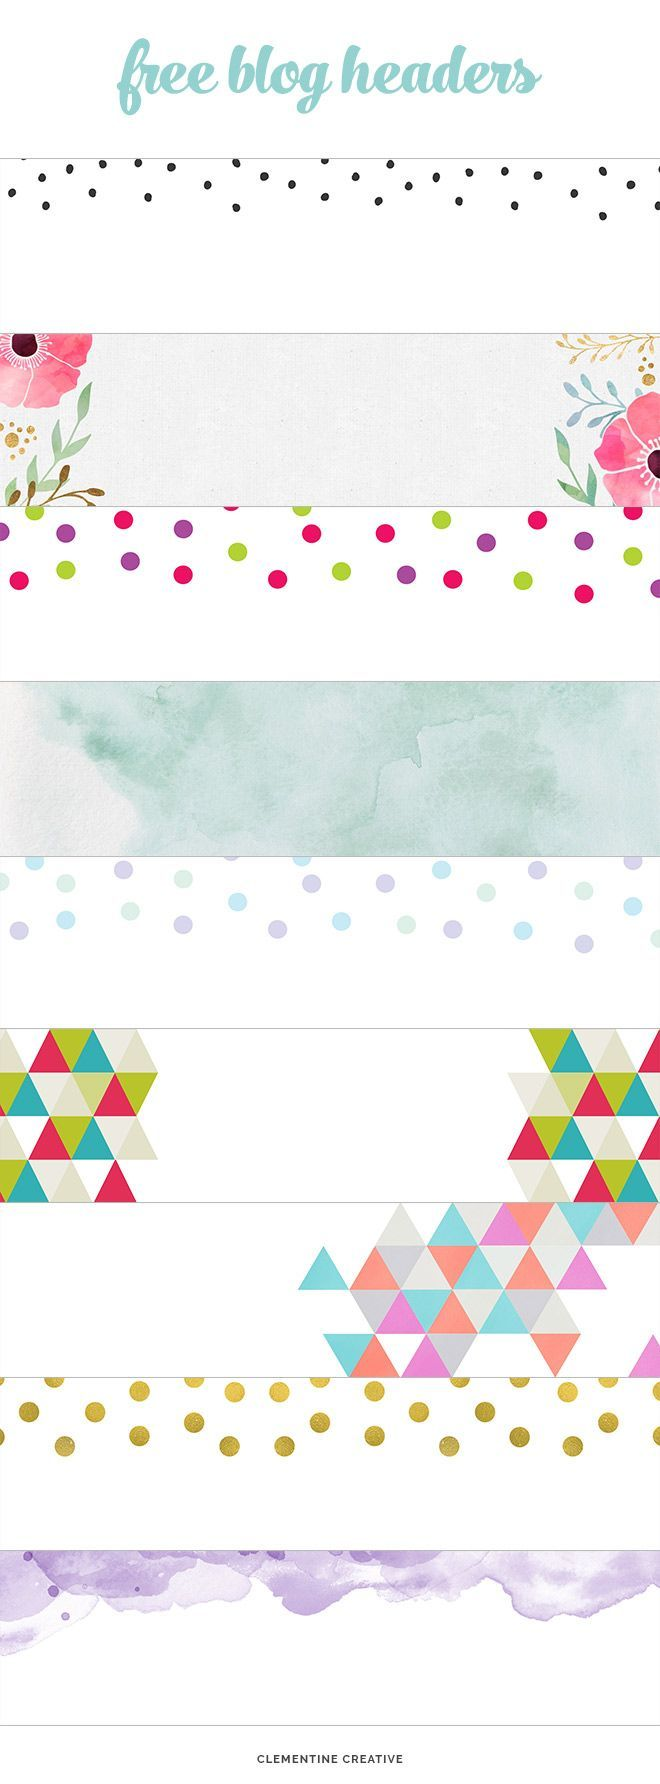 Silver bling background free bling vector art 412 free downloads - Free Creative Blog Headers To Download